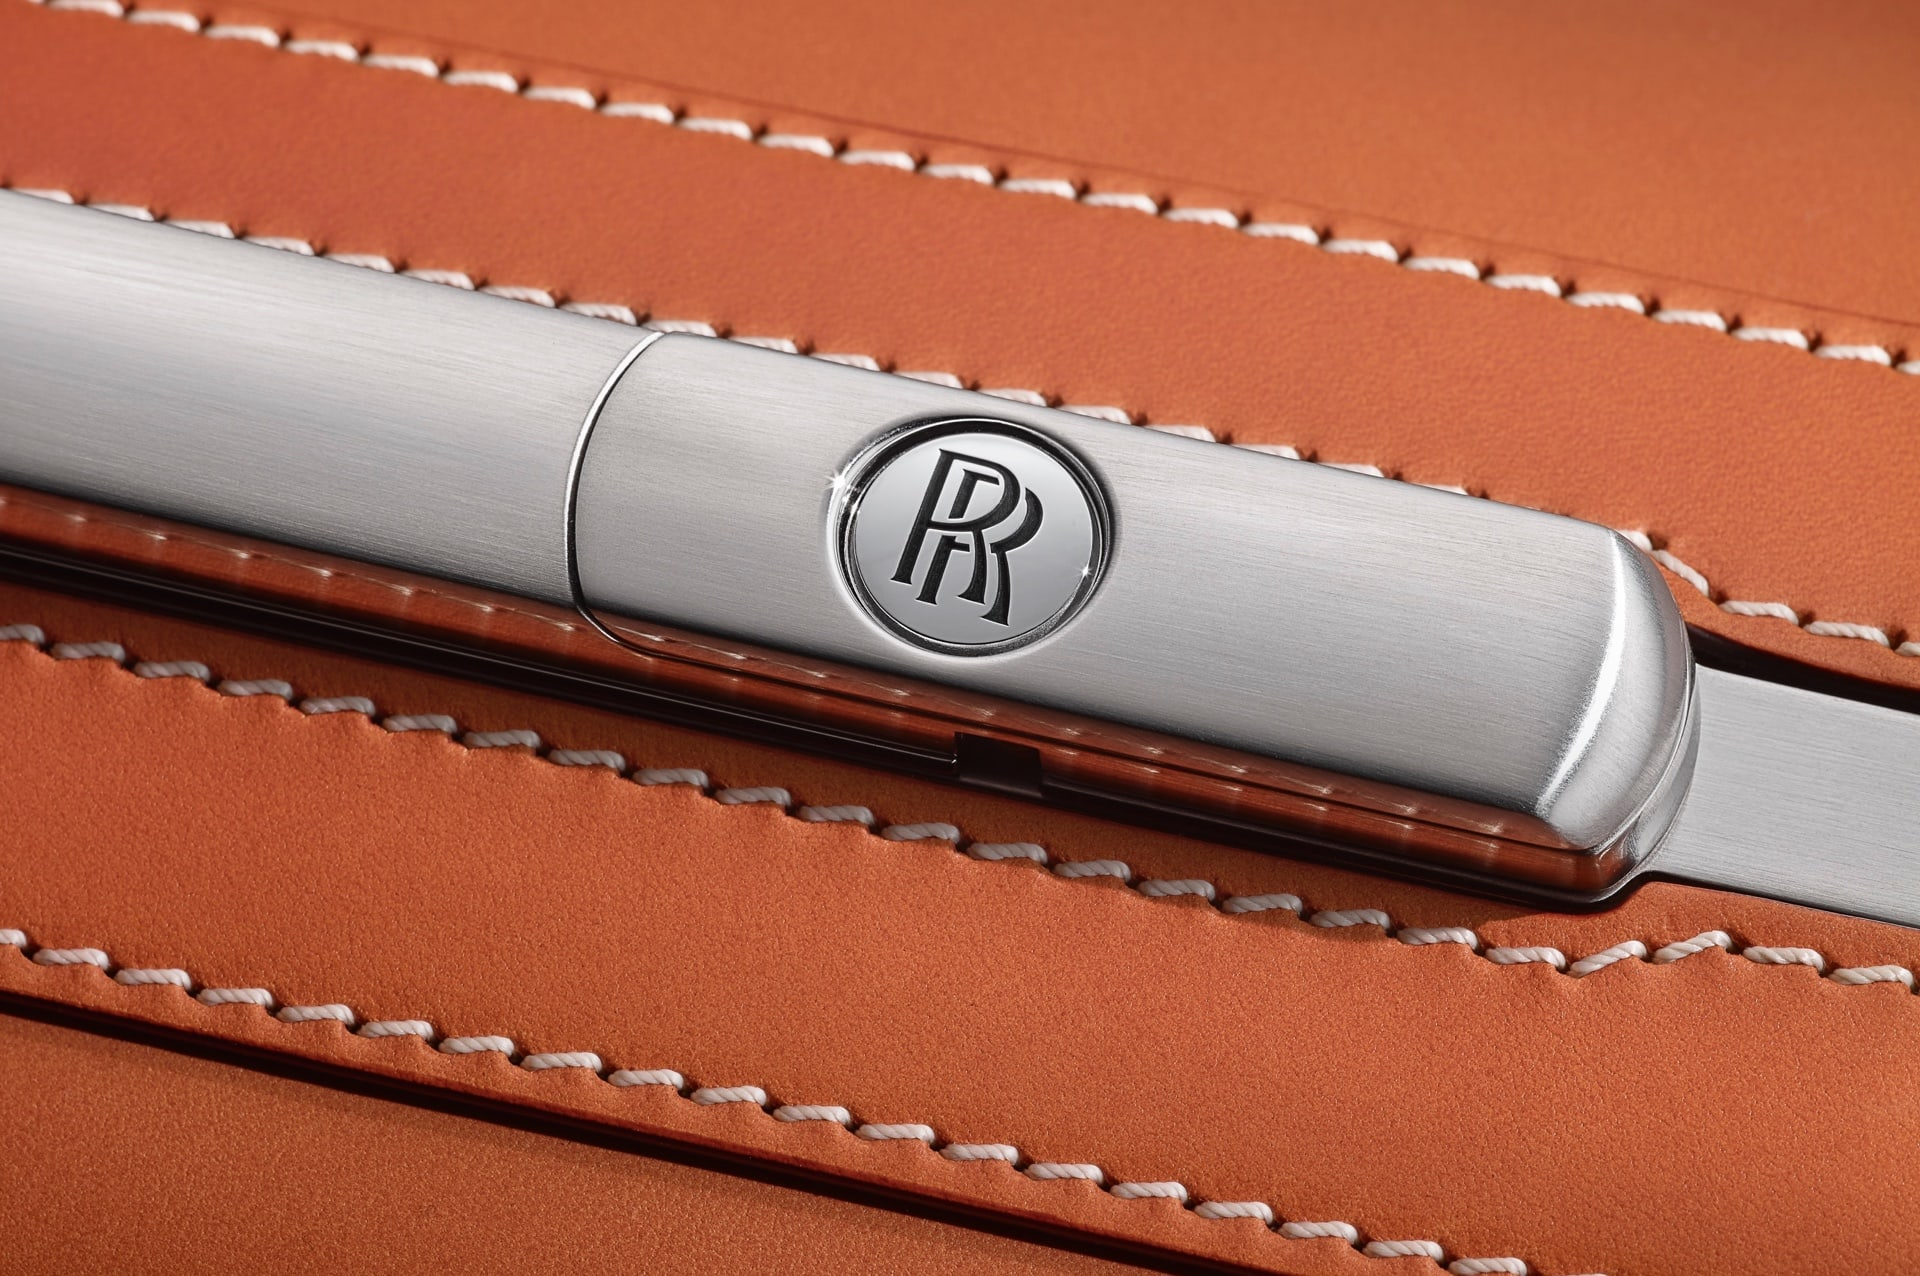 A closeup of the leather and metallic details on the handcrafted Rolls-Royce Phantom Luggage